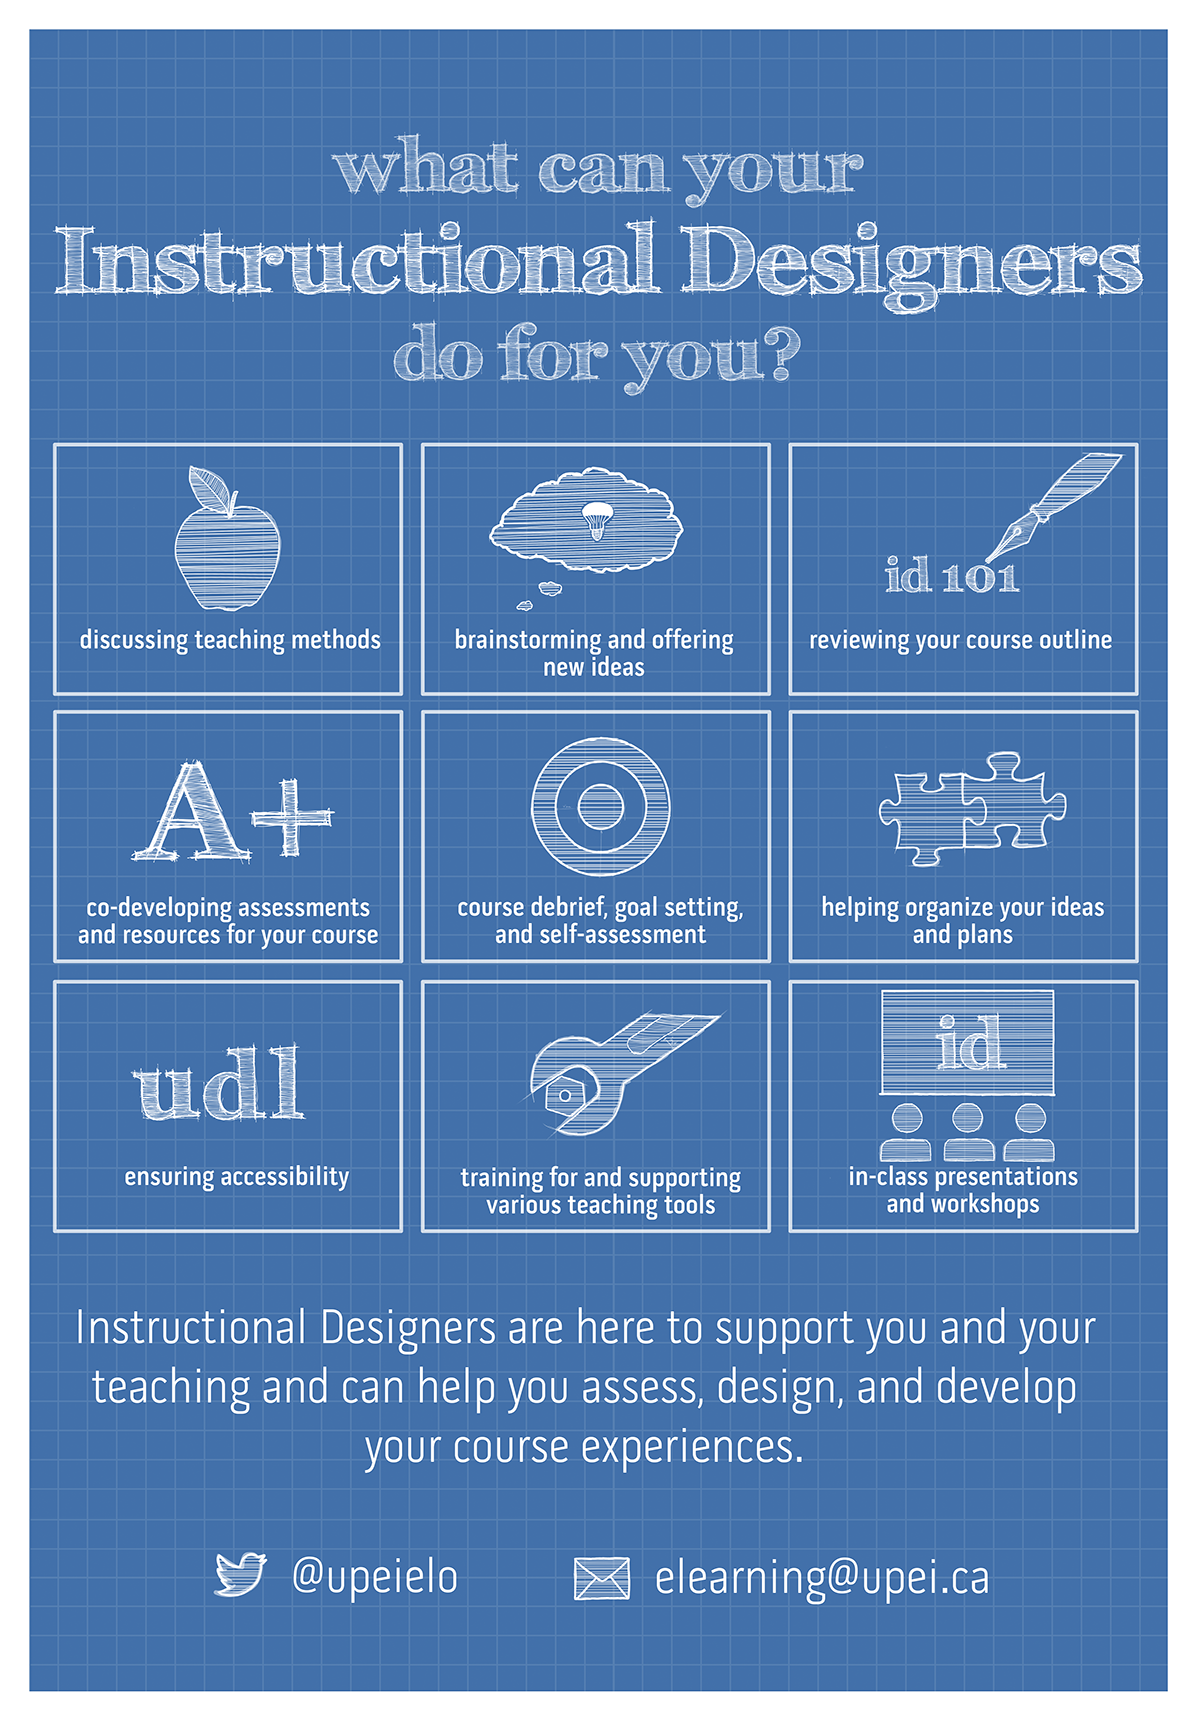 A poster about what an instructional designer can do for you. Services listed are discuss teaching methods; identify and resolve accessibility barriers; debrief courses, set goals, and facilitate self-assessment; help organize your plans and projects; brainstorm and offer new ideas for development; provide training and support for various teaching tools; review course outlines and assess instructional needs; co-develop assessments and course resources; present in class and facilitate workshops.